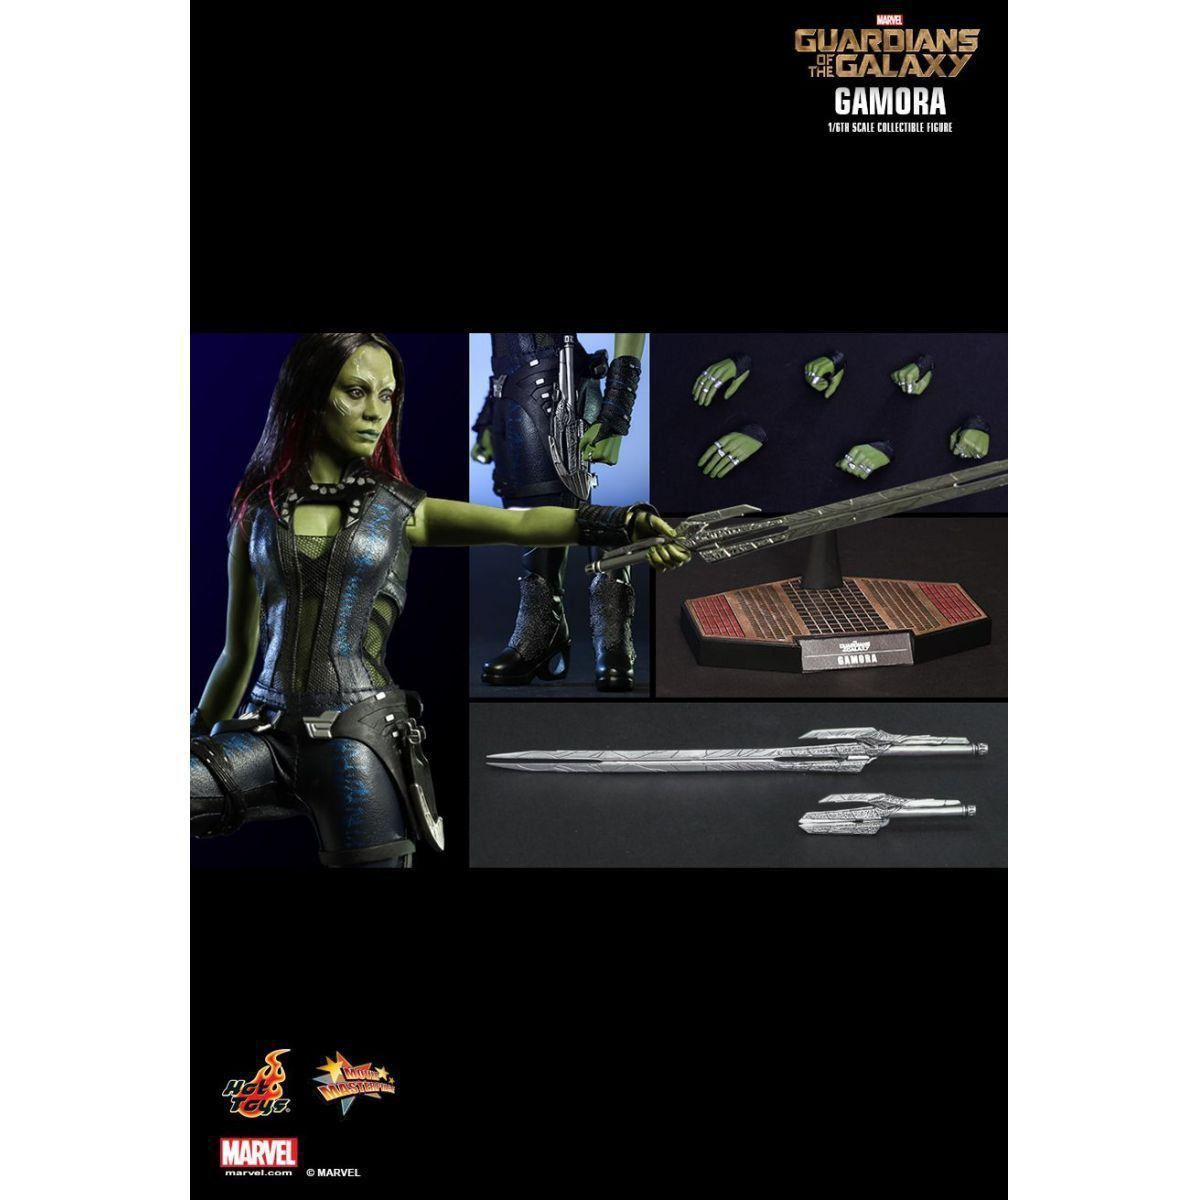 Boneco Gamora: Guardiões da Galáxia (Guardians of the Galaxy) Escala 1/6 (MMS259) - Hot Toys - CG